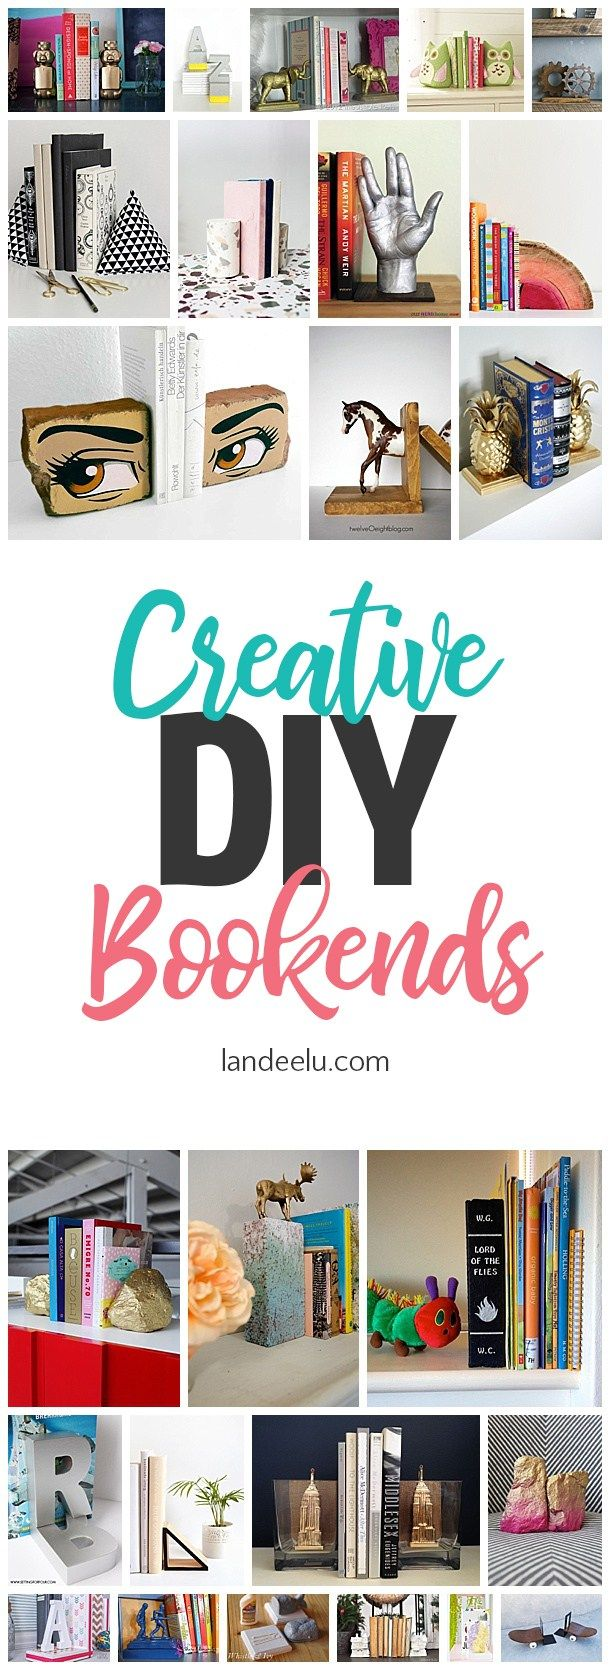 DIY Crafts : How cool are these creative DIY bookends? Such a fun ...